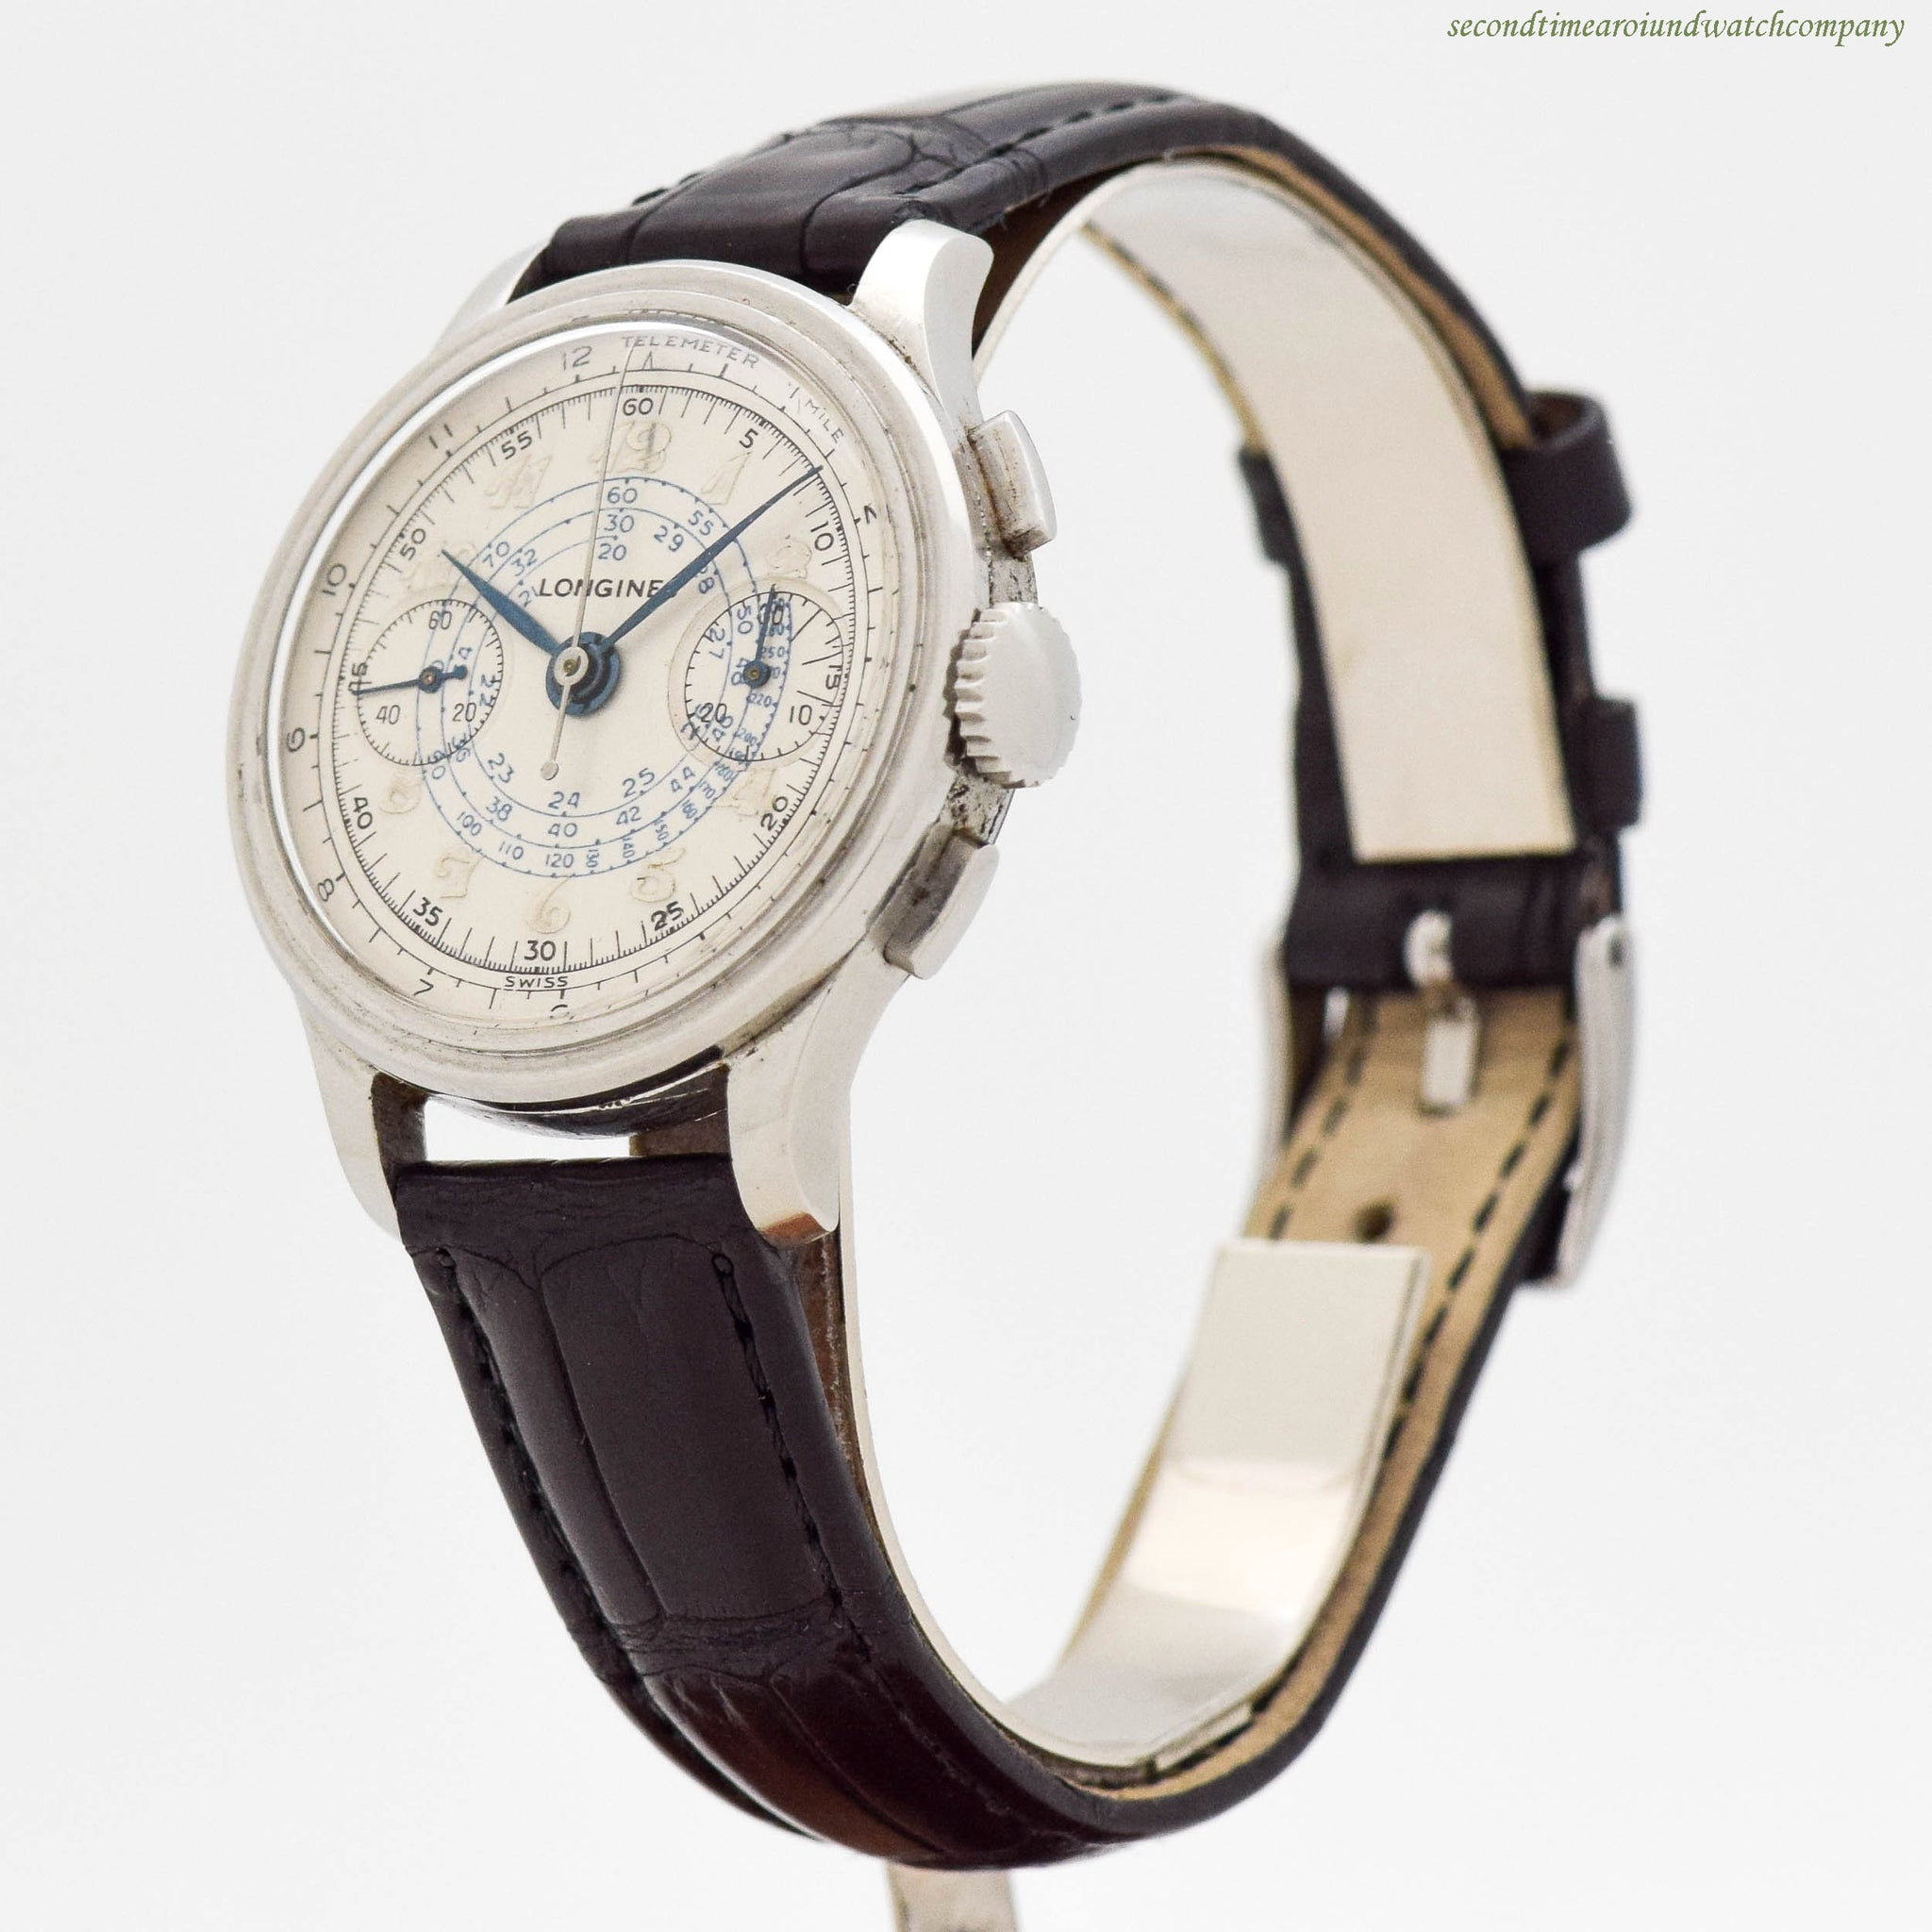 1939 Vintage Longines 2-Register Chronograph Stainless Steel Watch